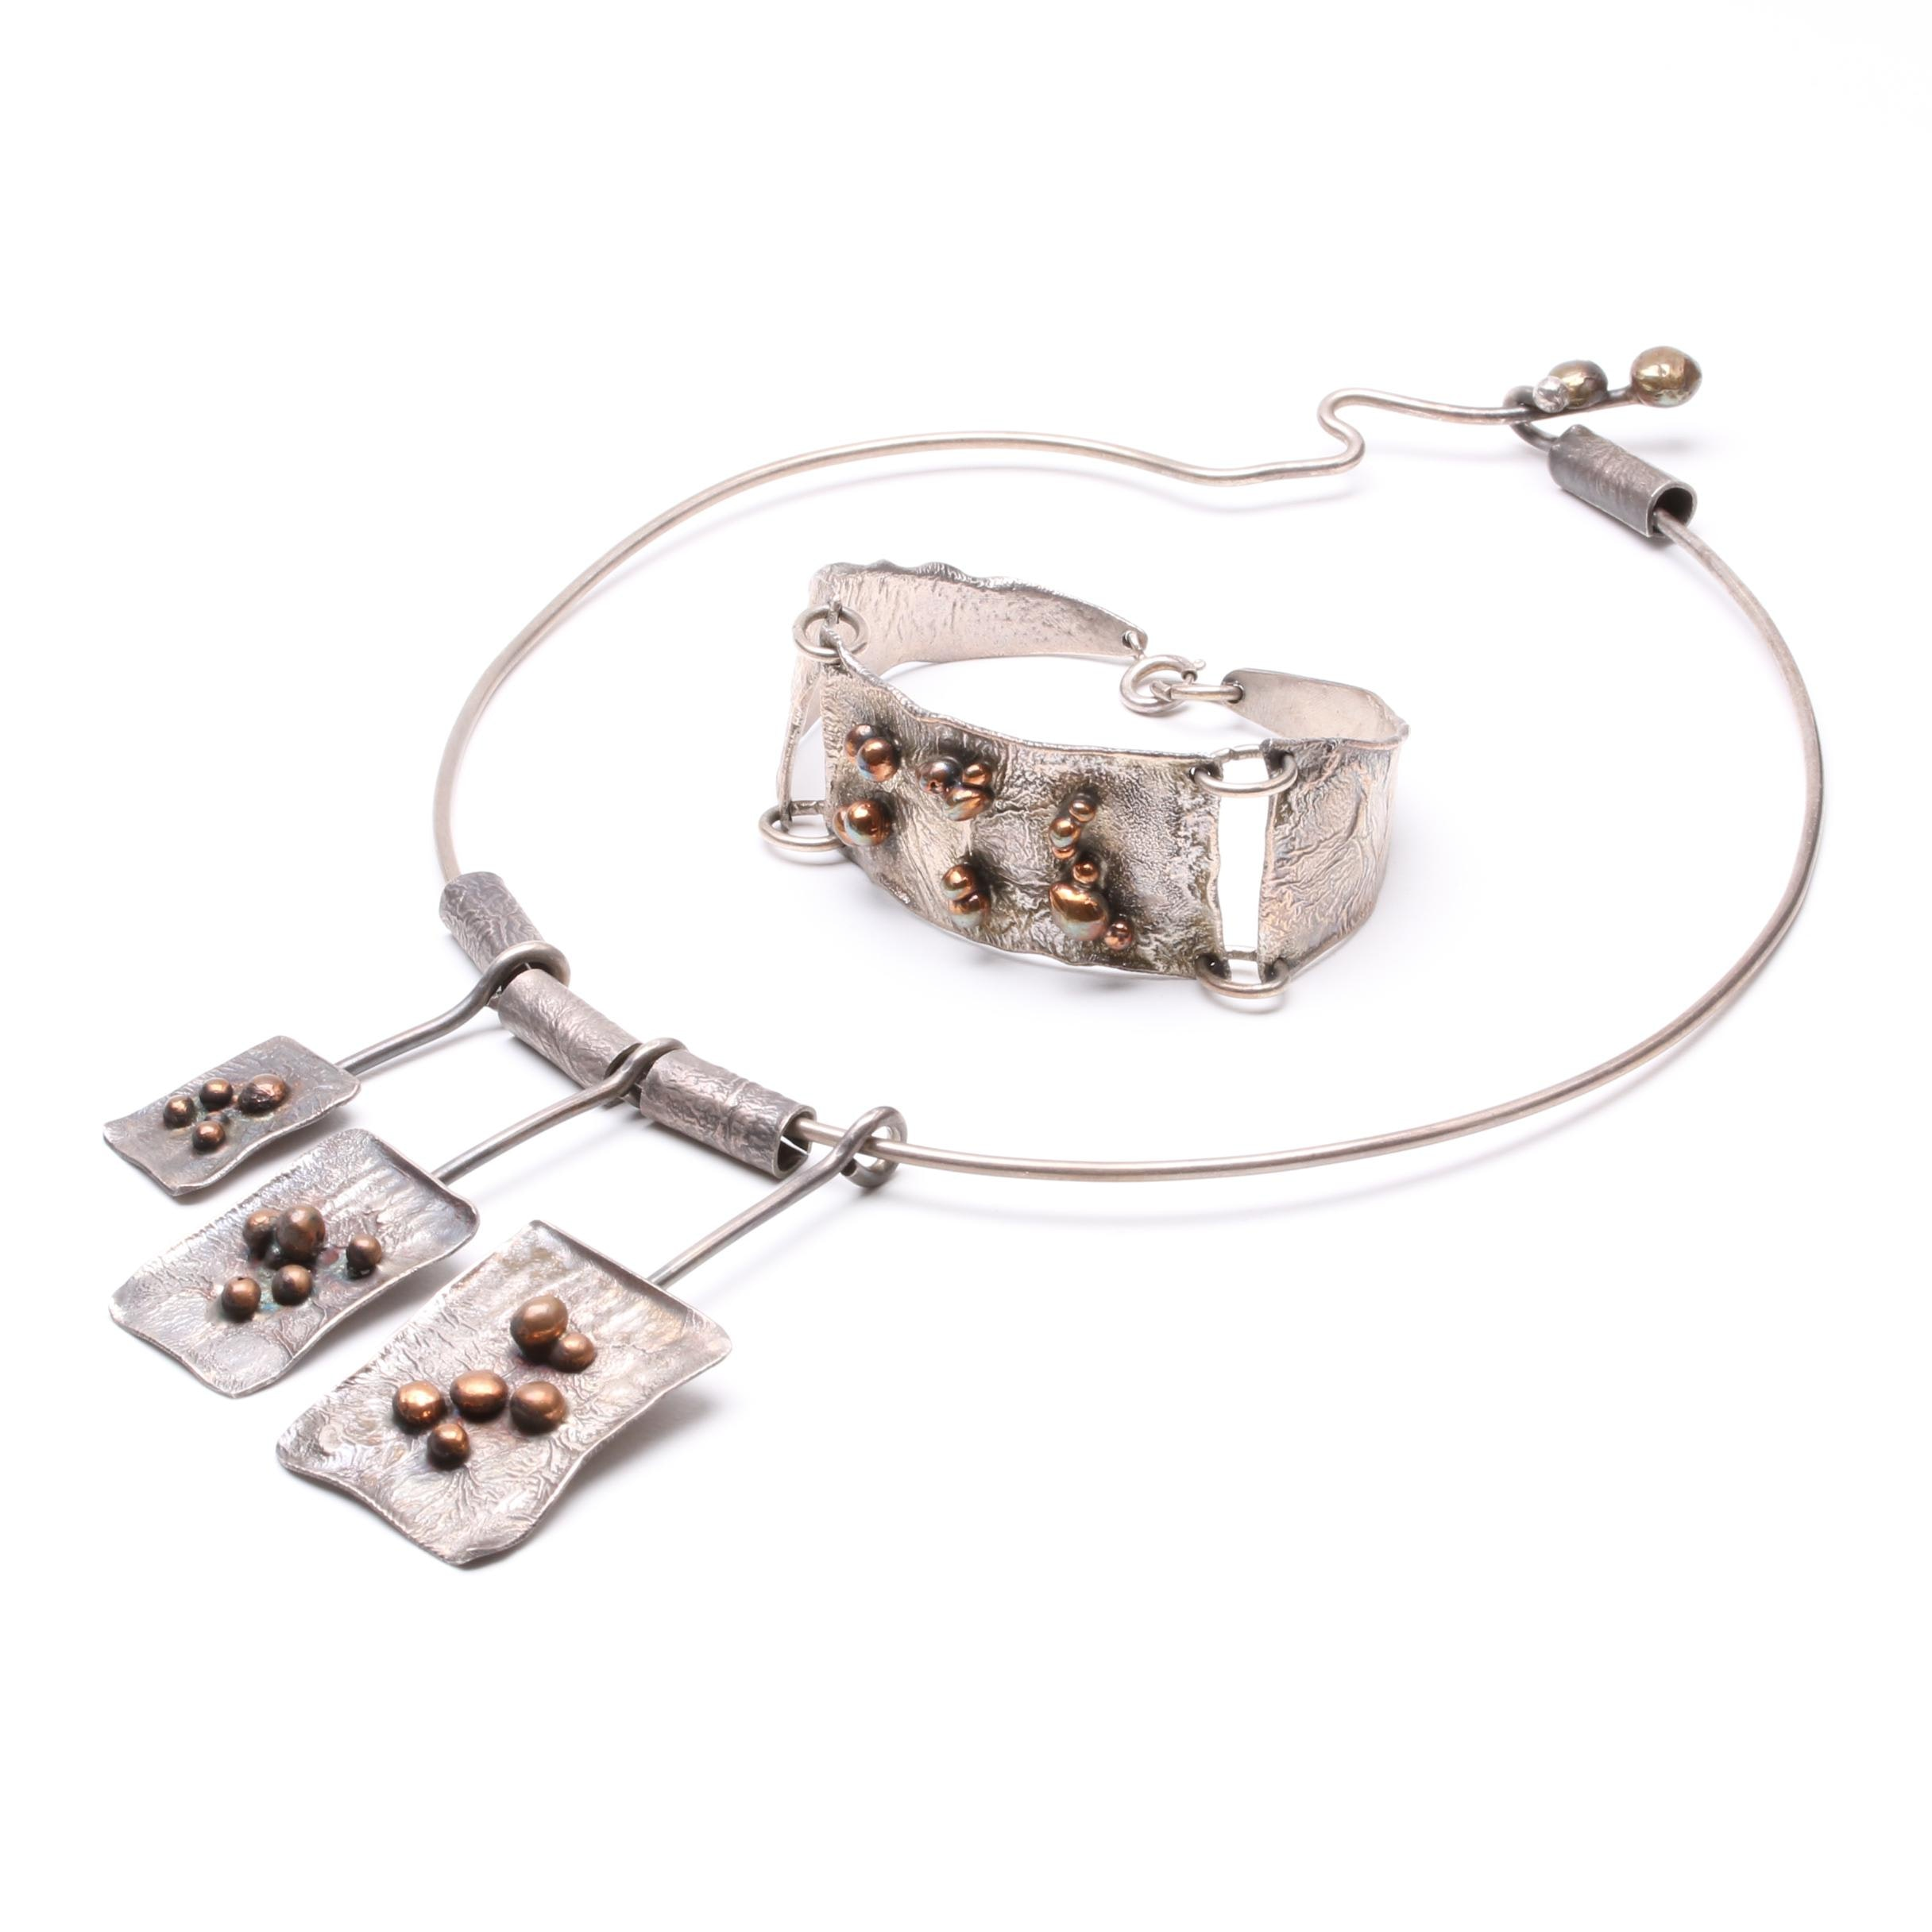 Sterling Silver Handcrafted Italian Modernist Necklace and Bracelet